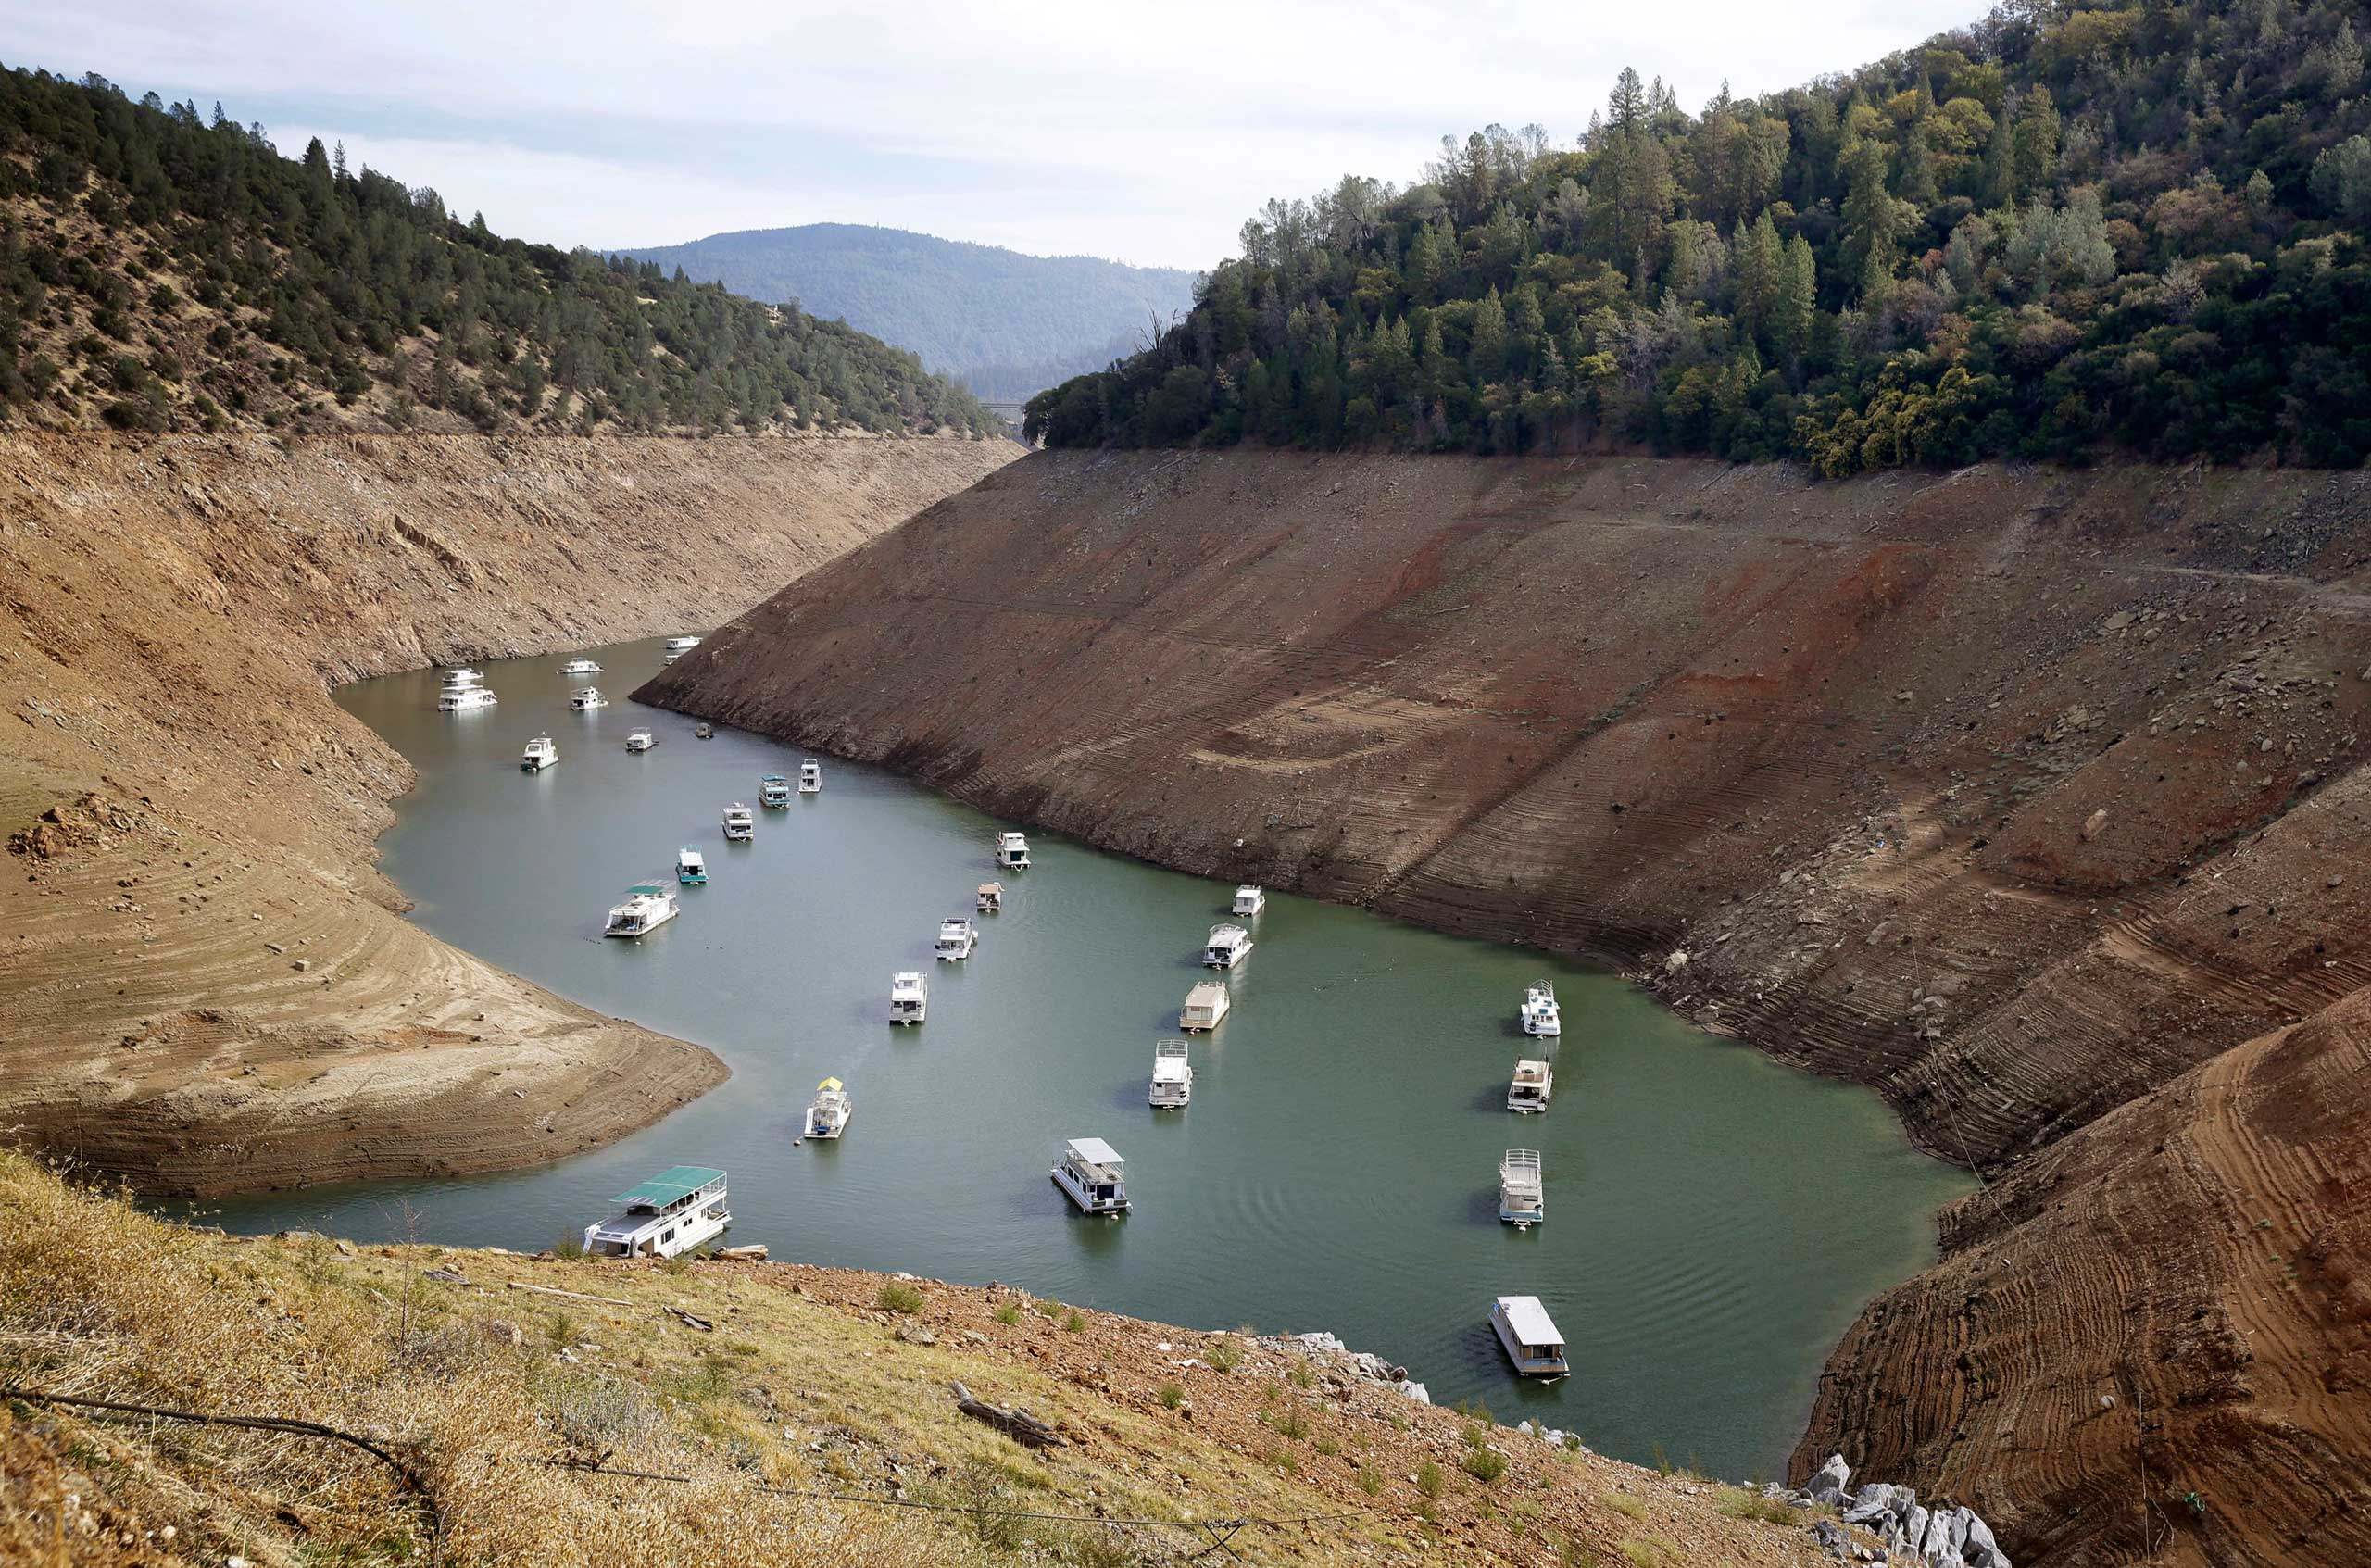 Houseboats sit in the drought lowered waters of Oroville Lake, near Oroville, Calif. in 2014.